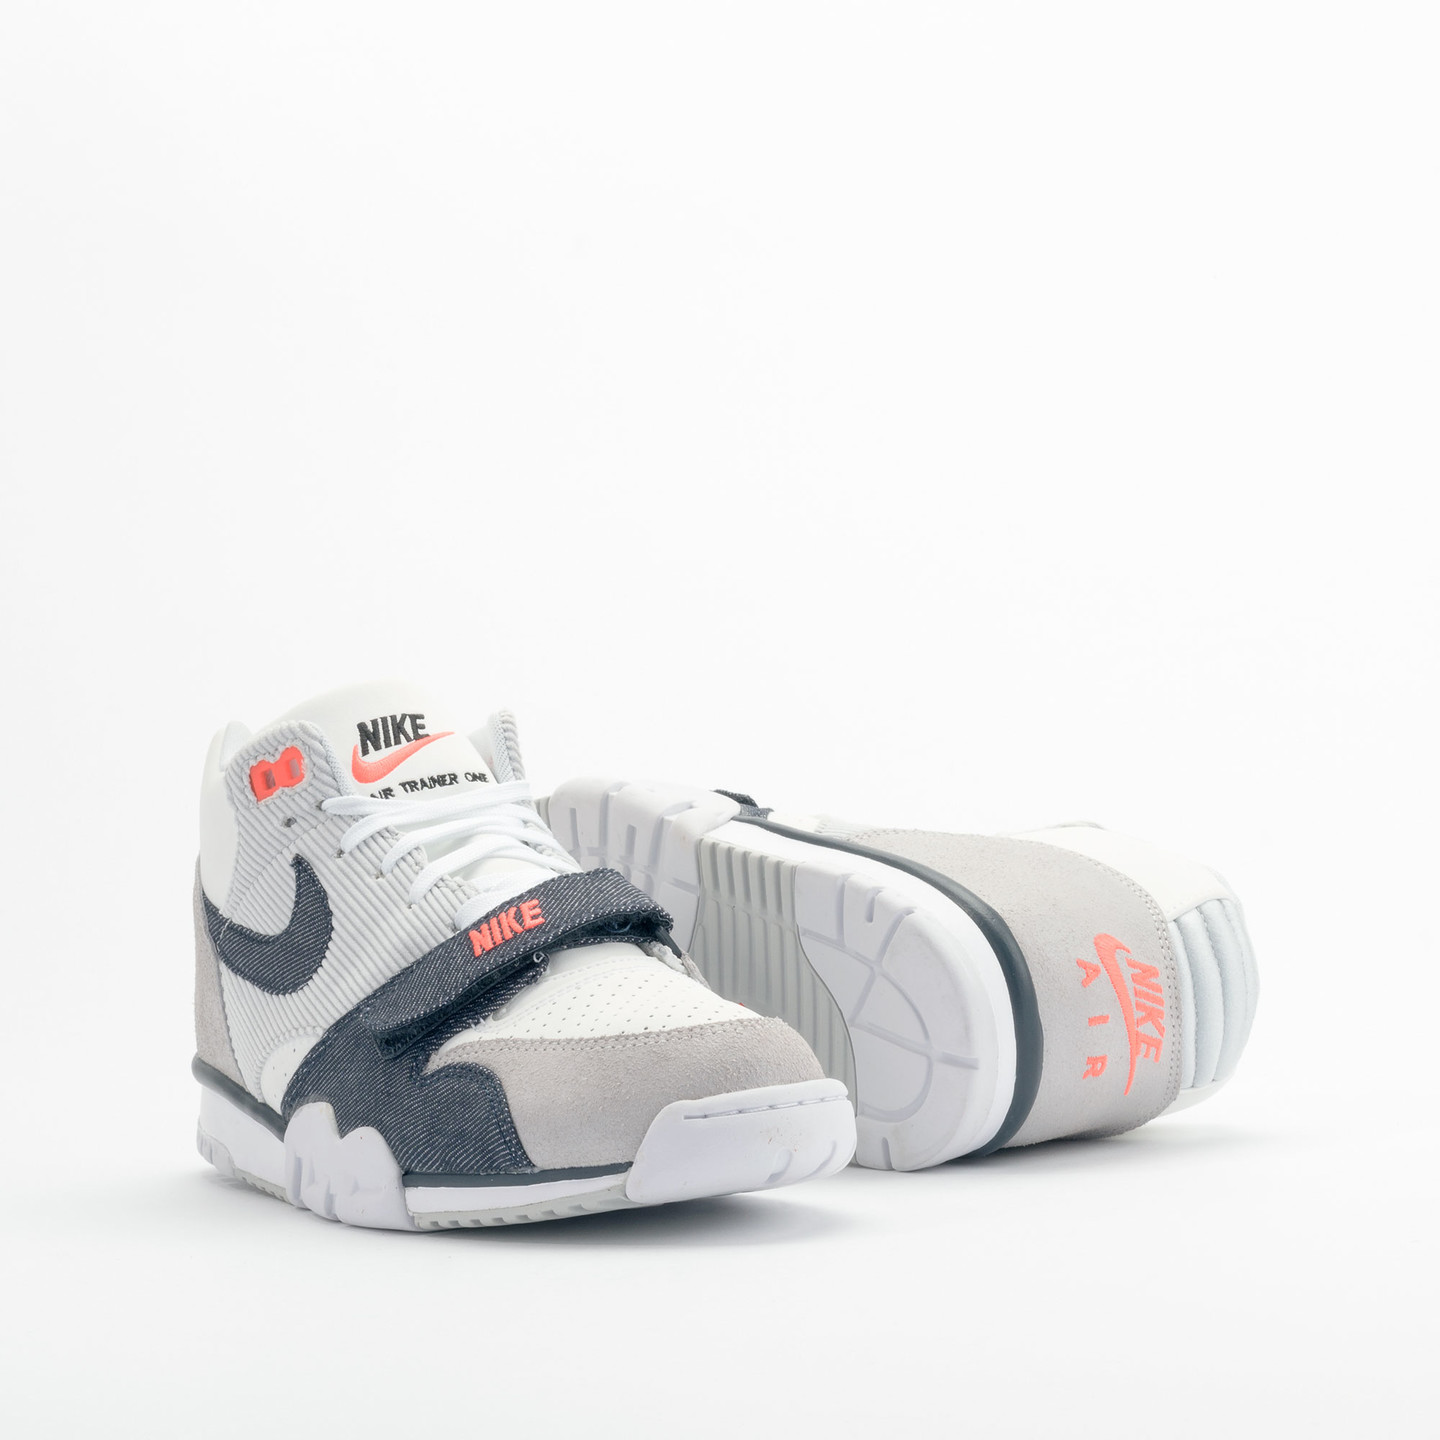 Nike Air Trainer 1 Mid White / Obsidian / Pure Platinum 317554-103-44.5